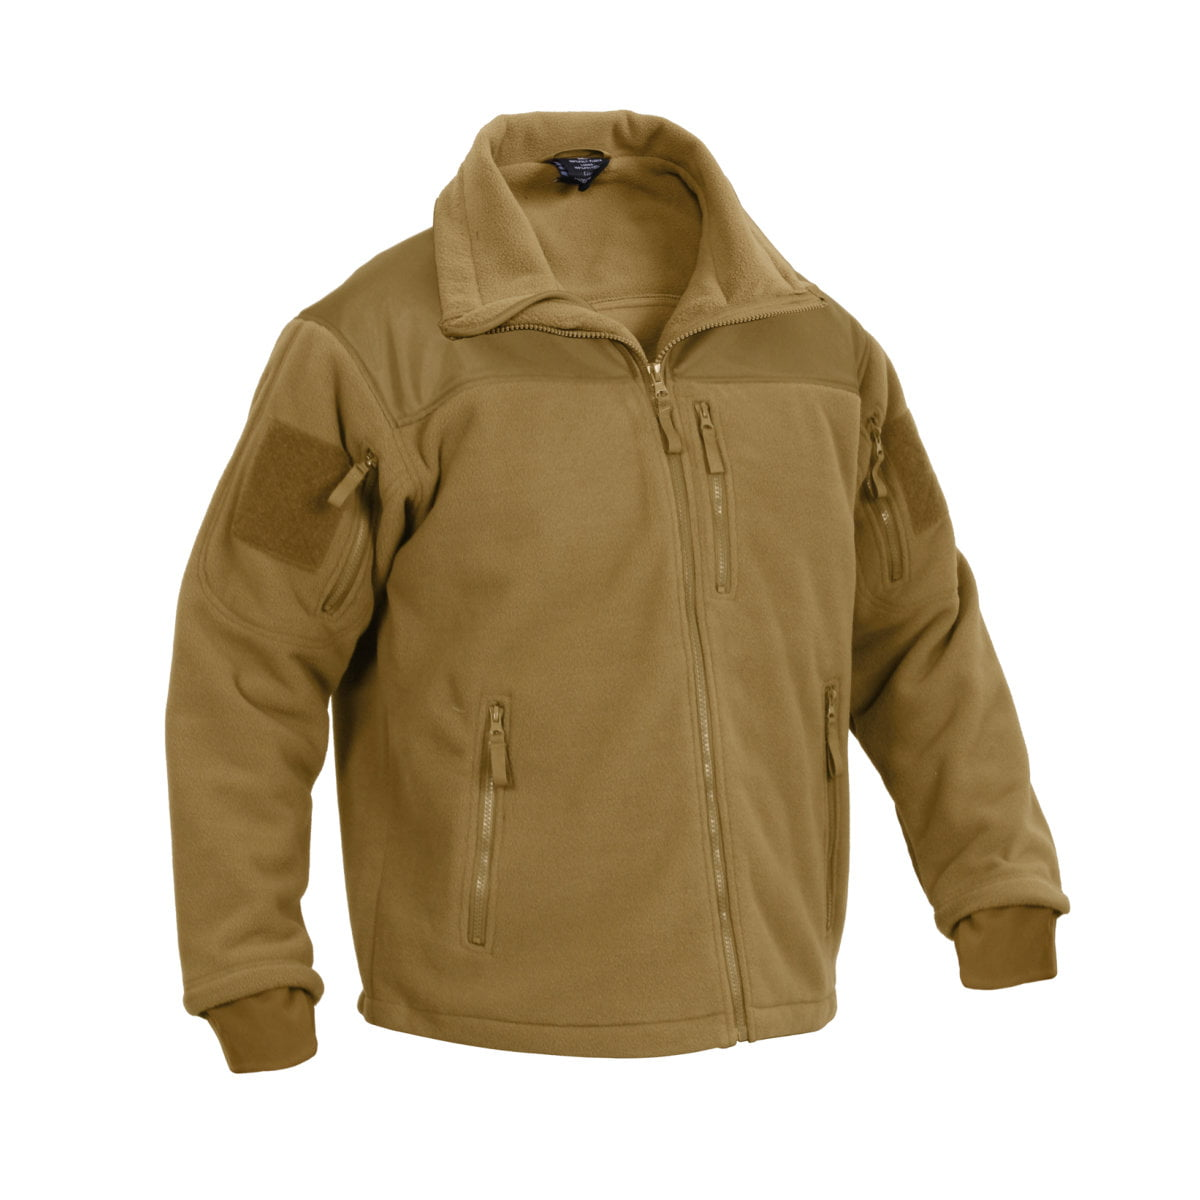 Rothco Special Ops Tactical Fleece Jacket - Walmart.com